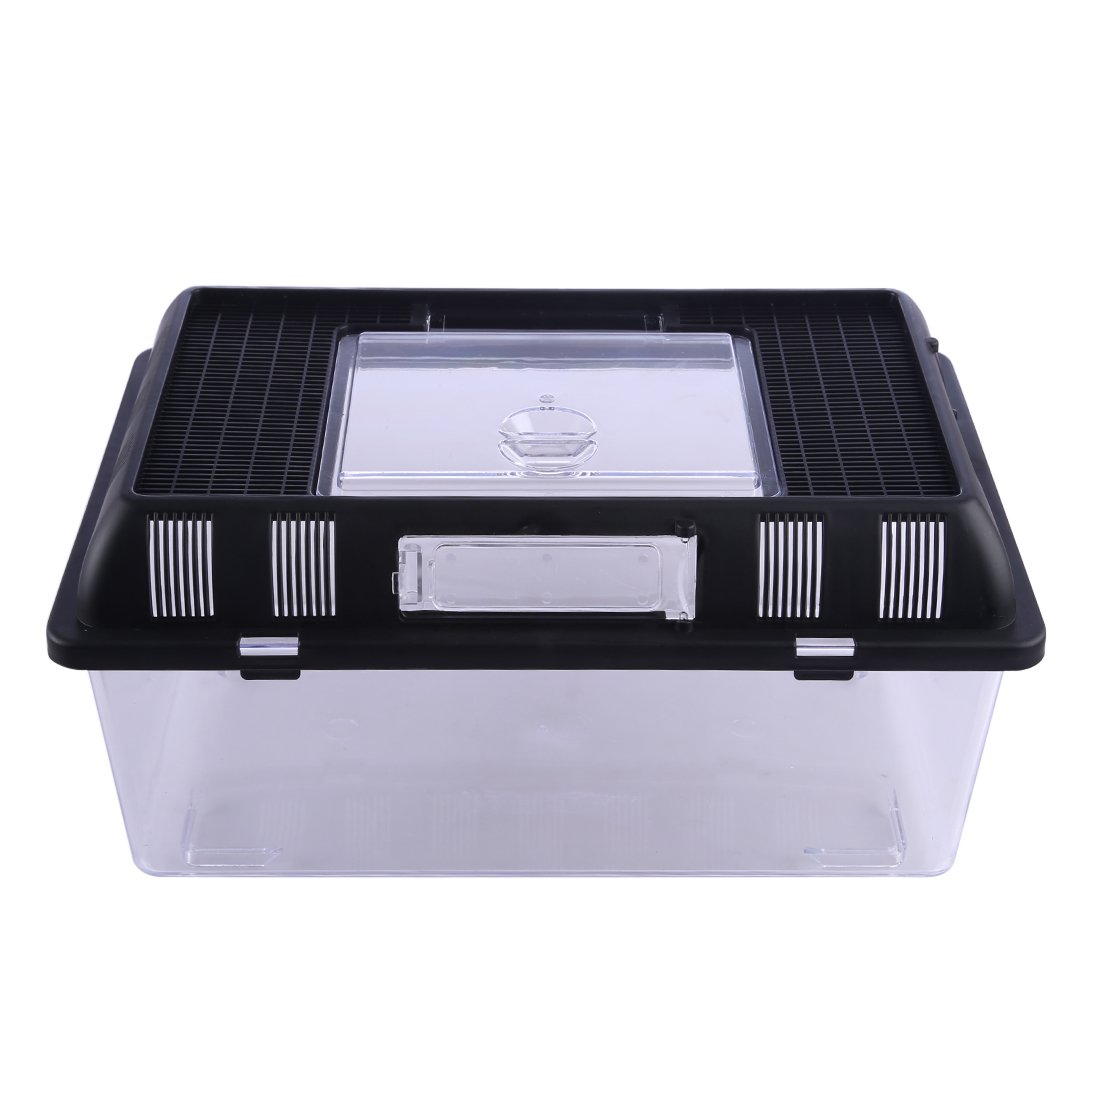 Petforu Breeding Box Reptile Carrier Terrarium Crawler Jar Portable Feeder